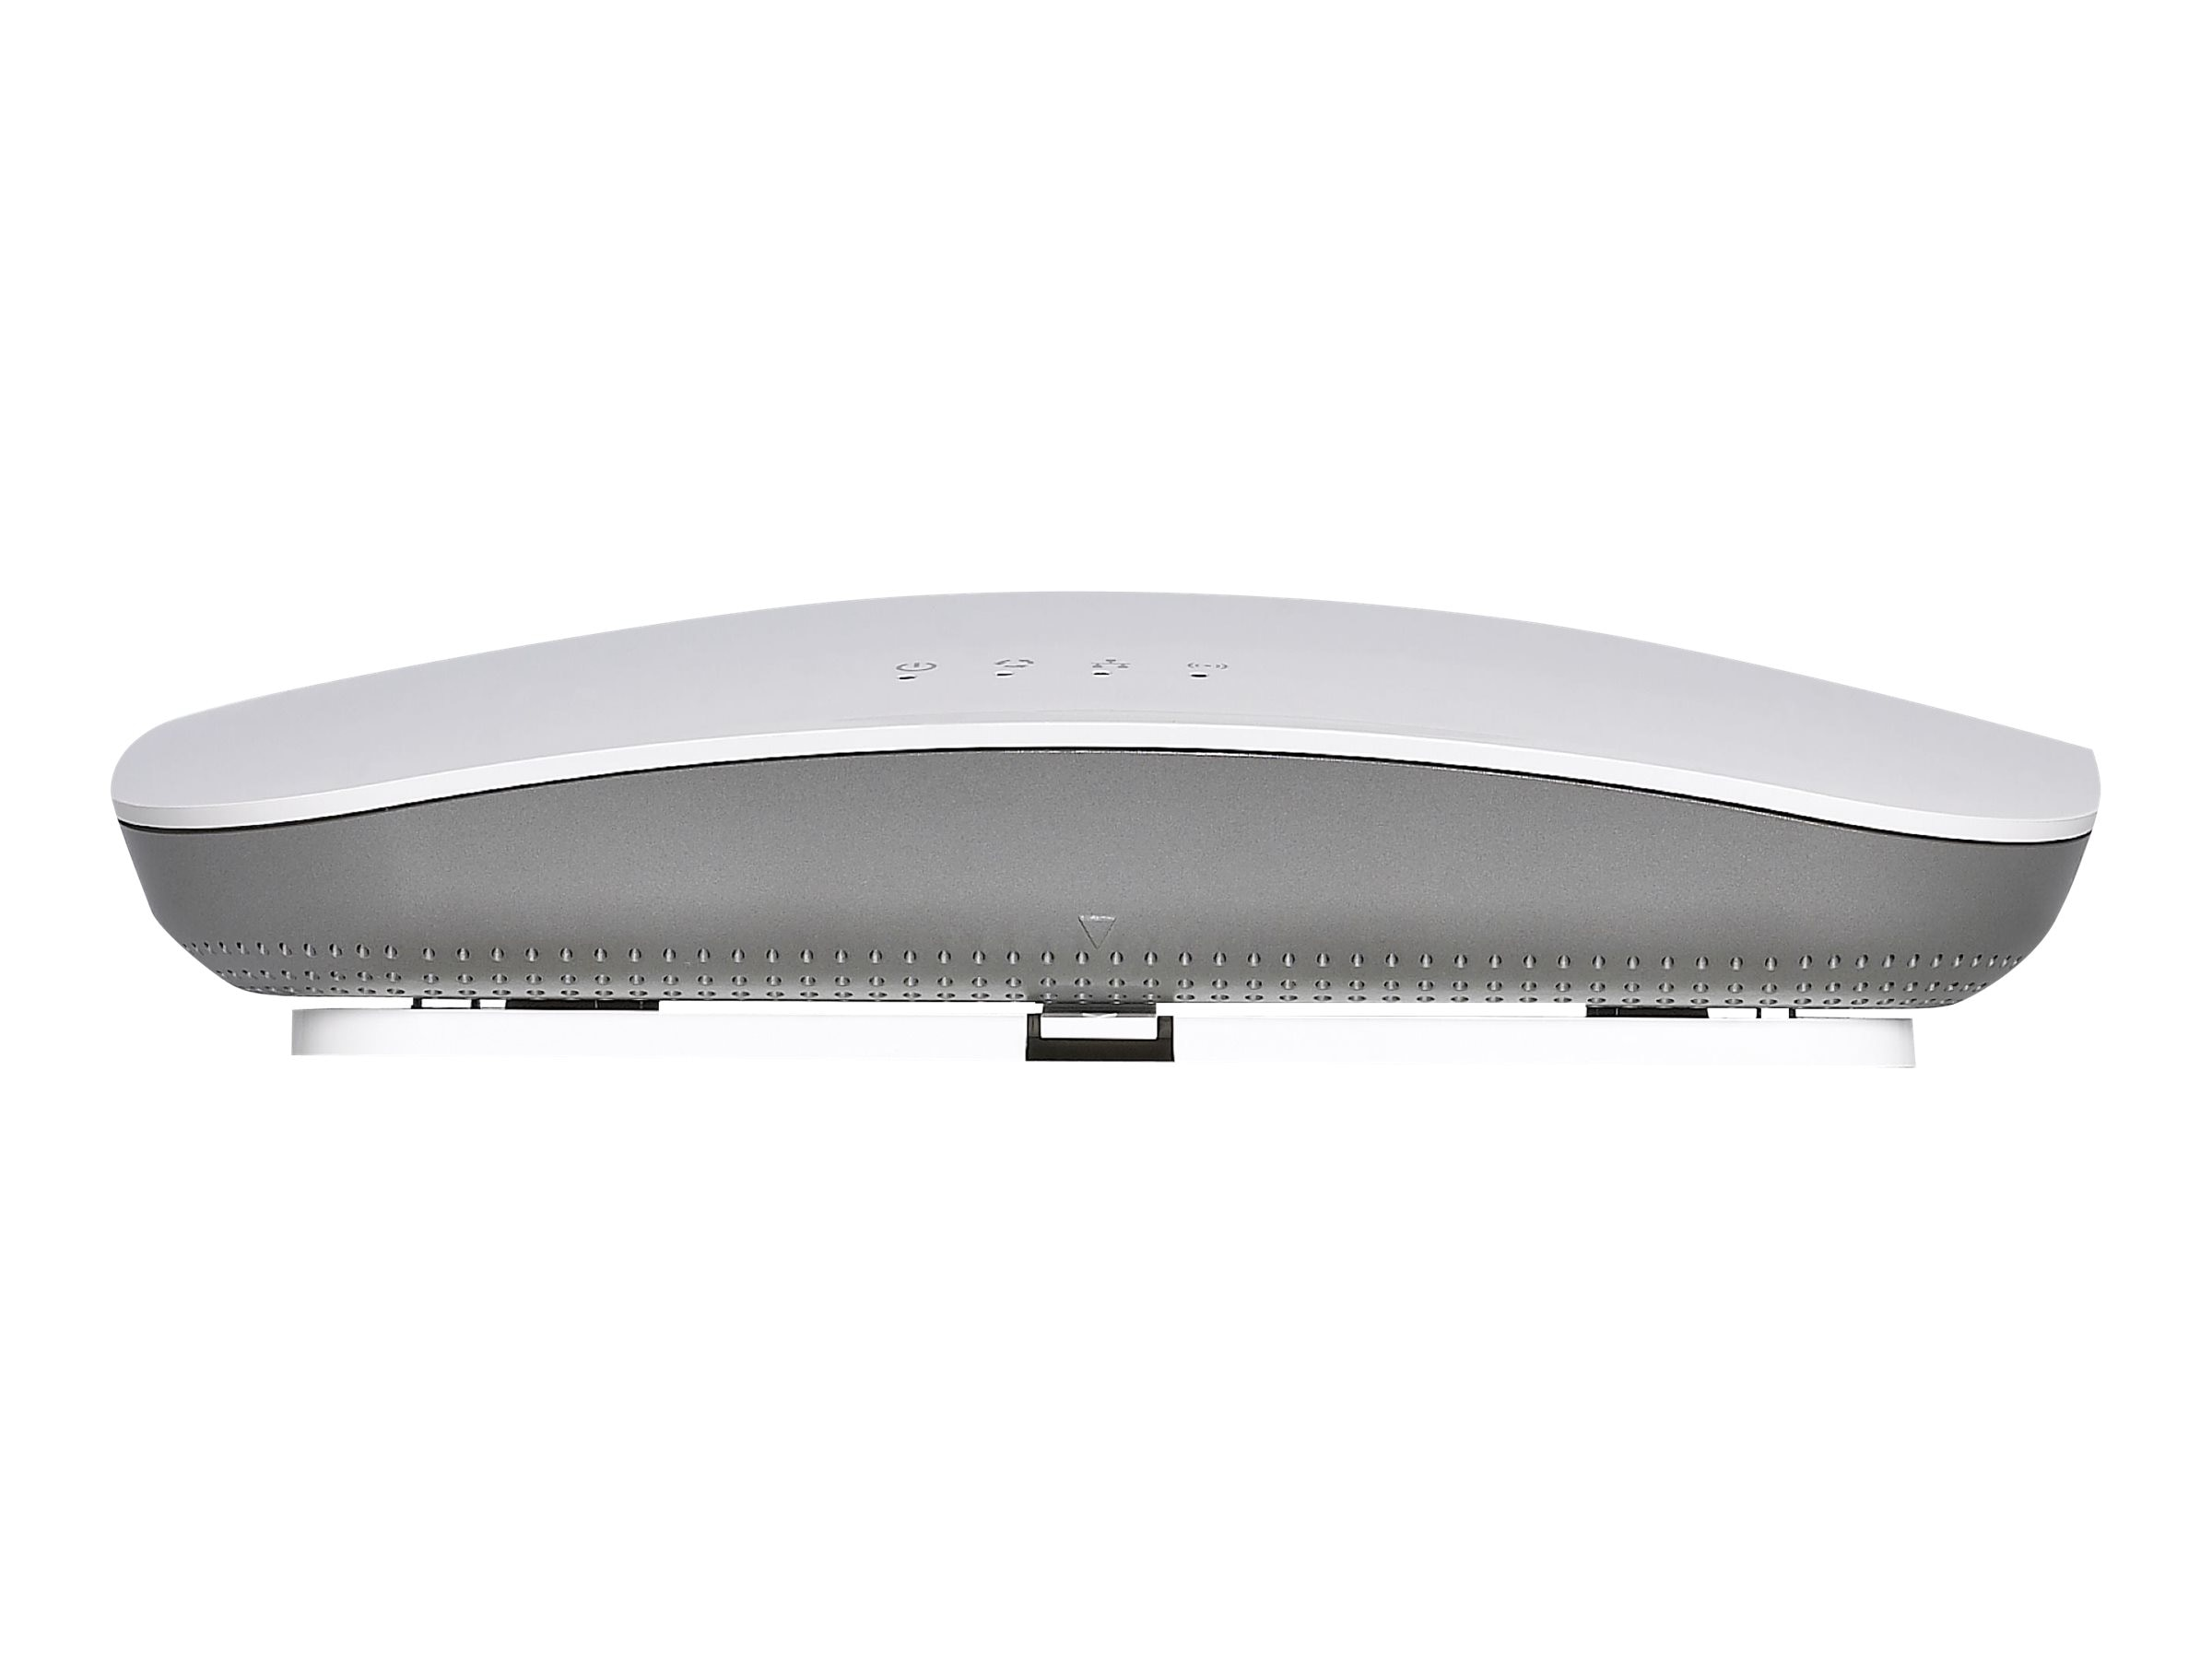 Netgear ProSafe Wireless-N Access Point, WNAP320-100NAS